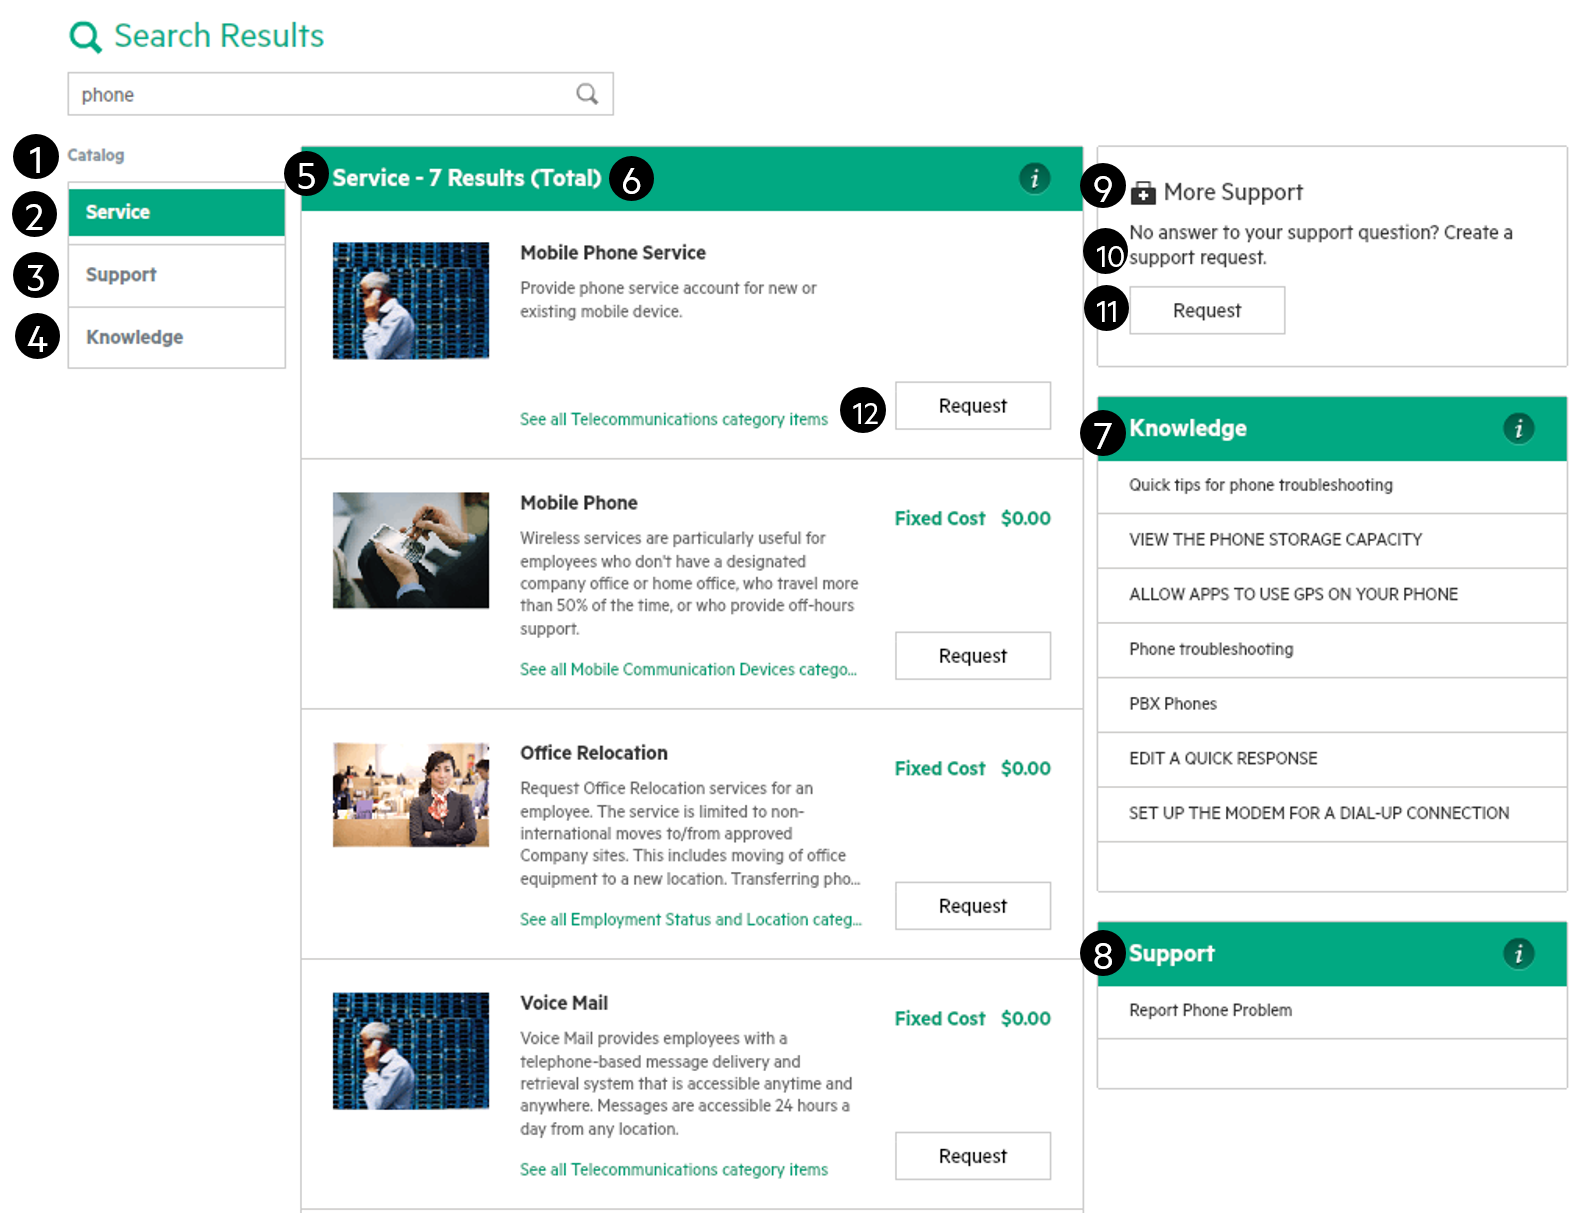 Customize the Search Results page